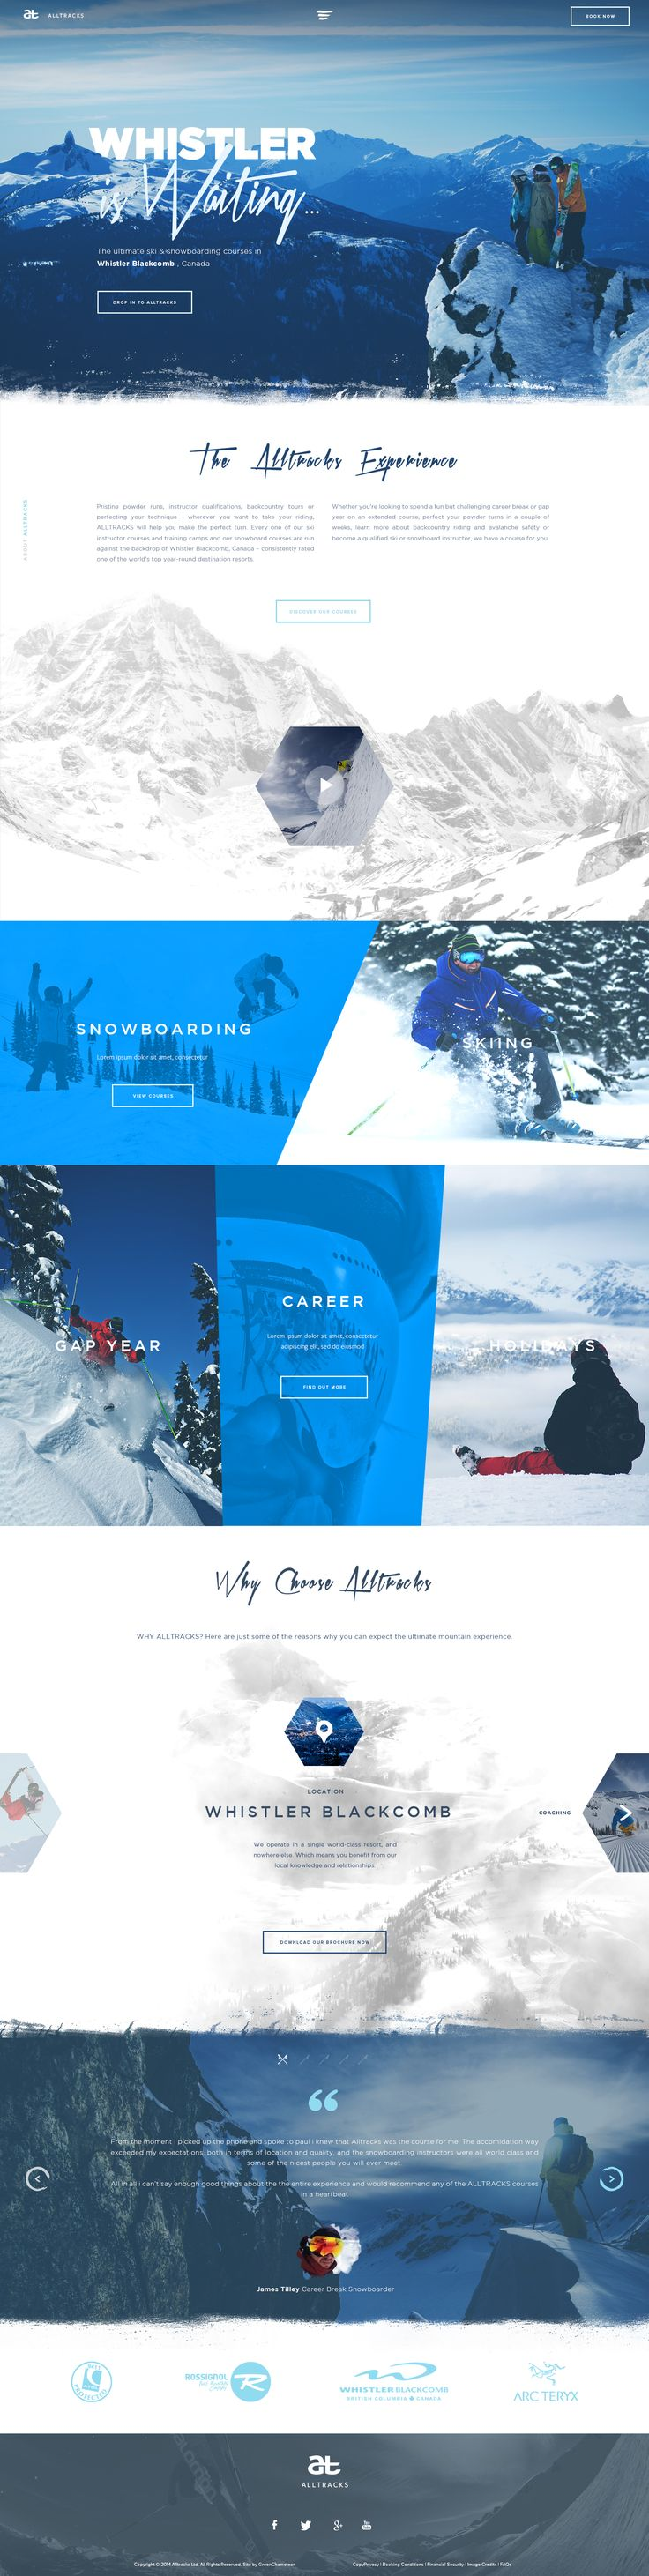 Alltracks Concept by Craig Gittins #web #webdesign #design #layout #grid